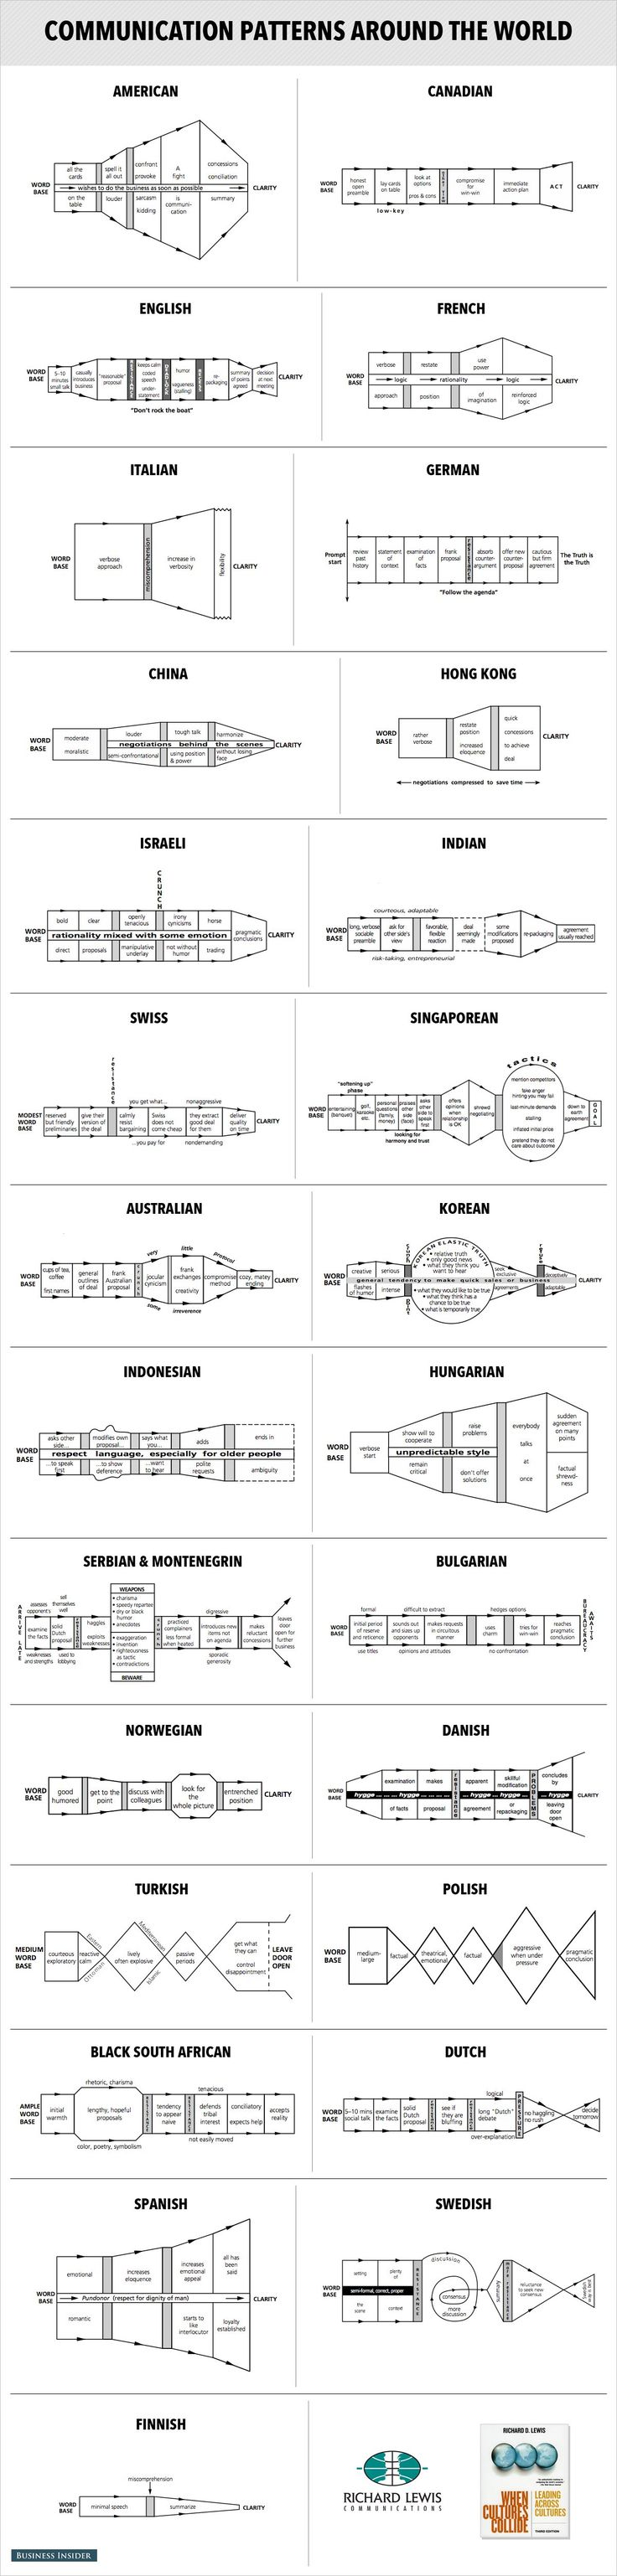 Communication Patterns Charts - These Diagrams Reveal How To Negotiate With People Around The World